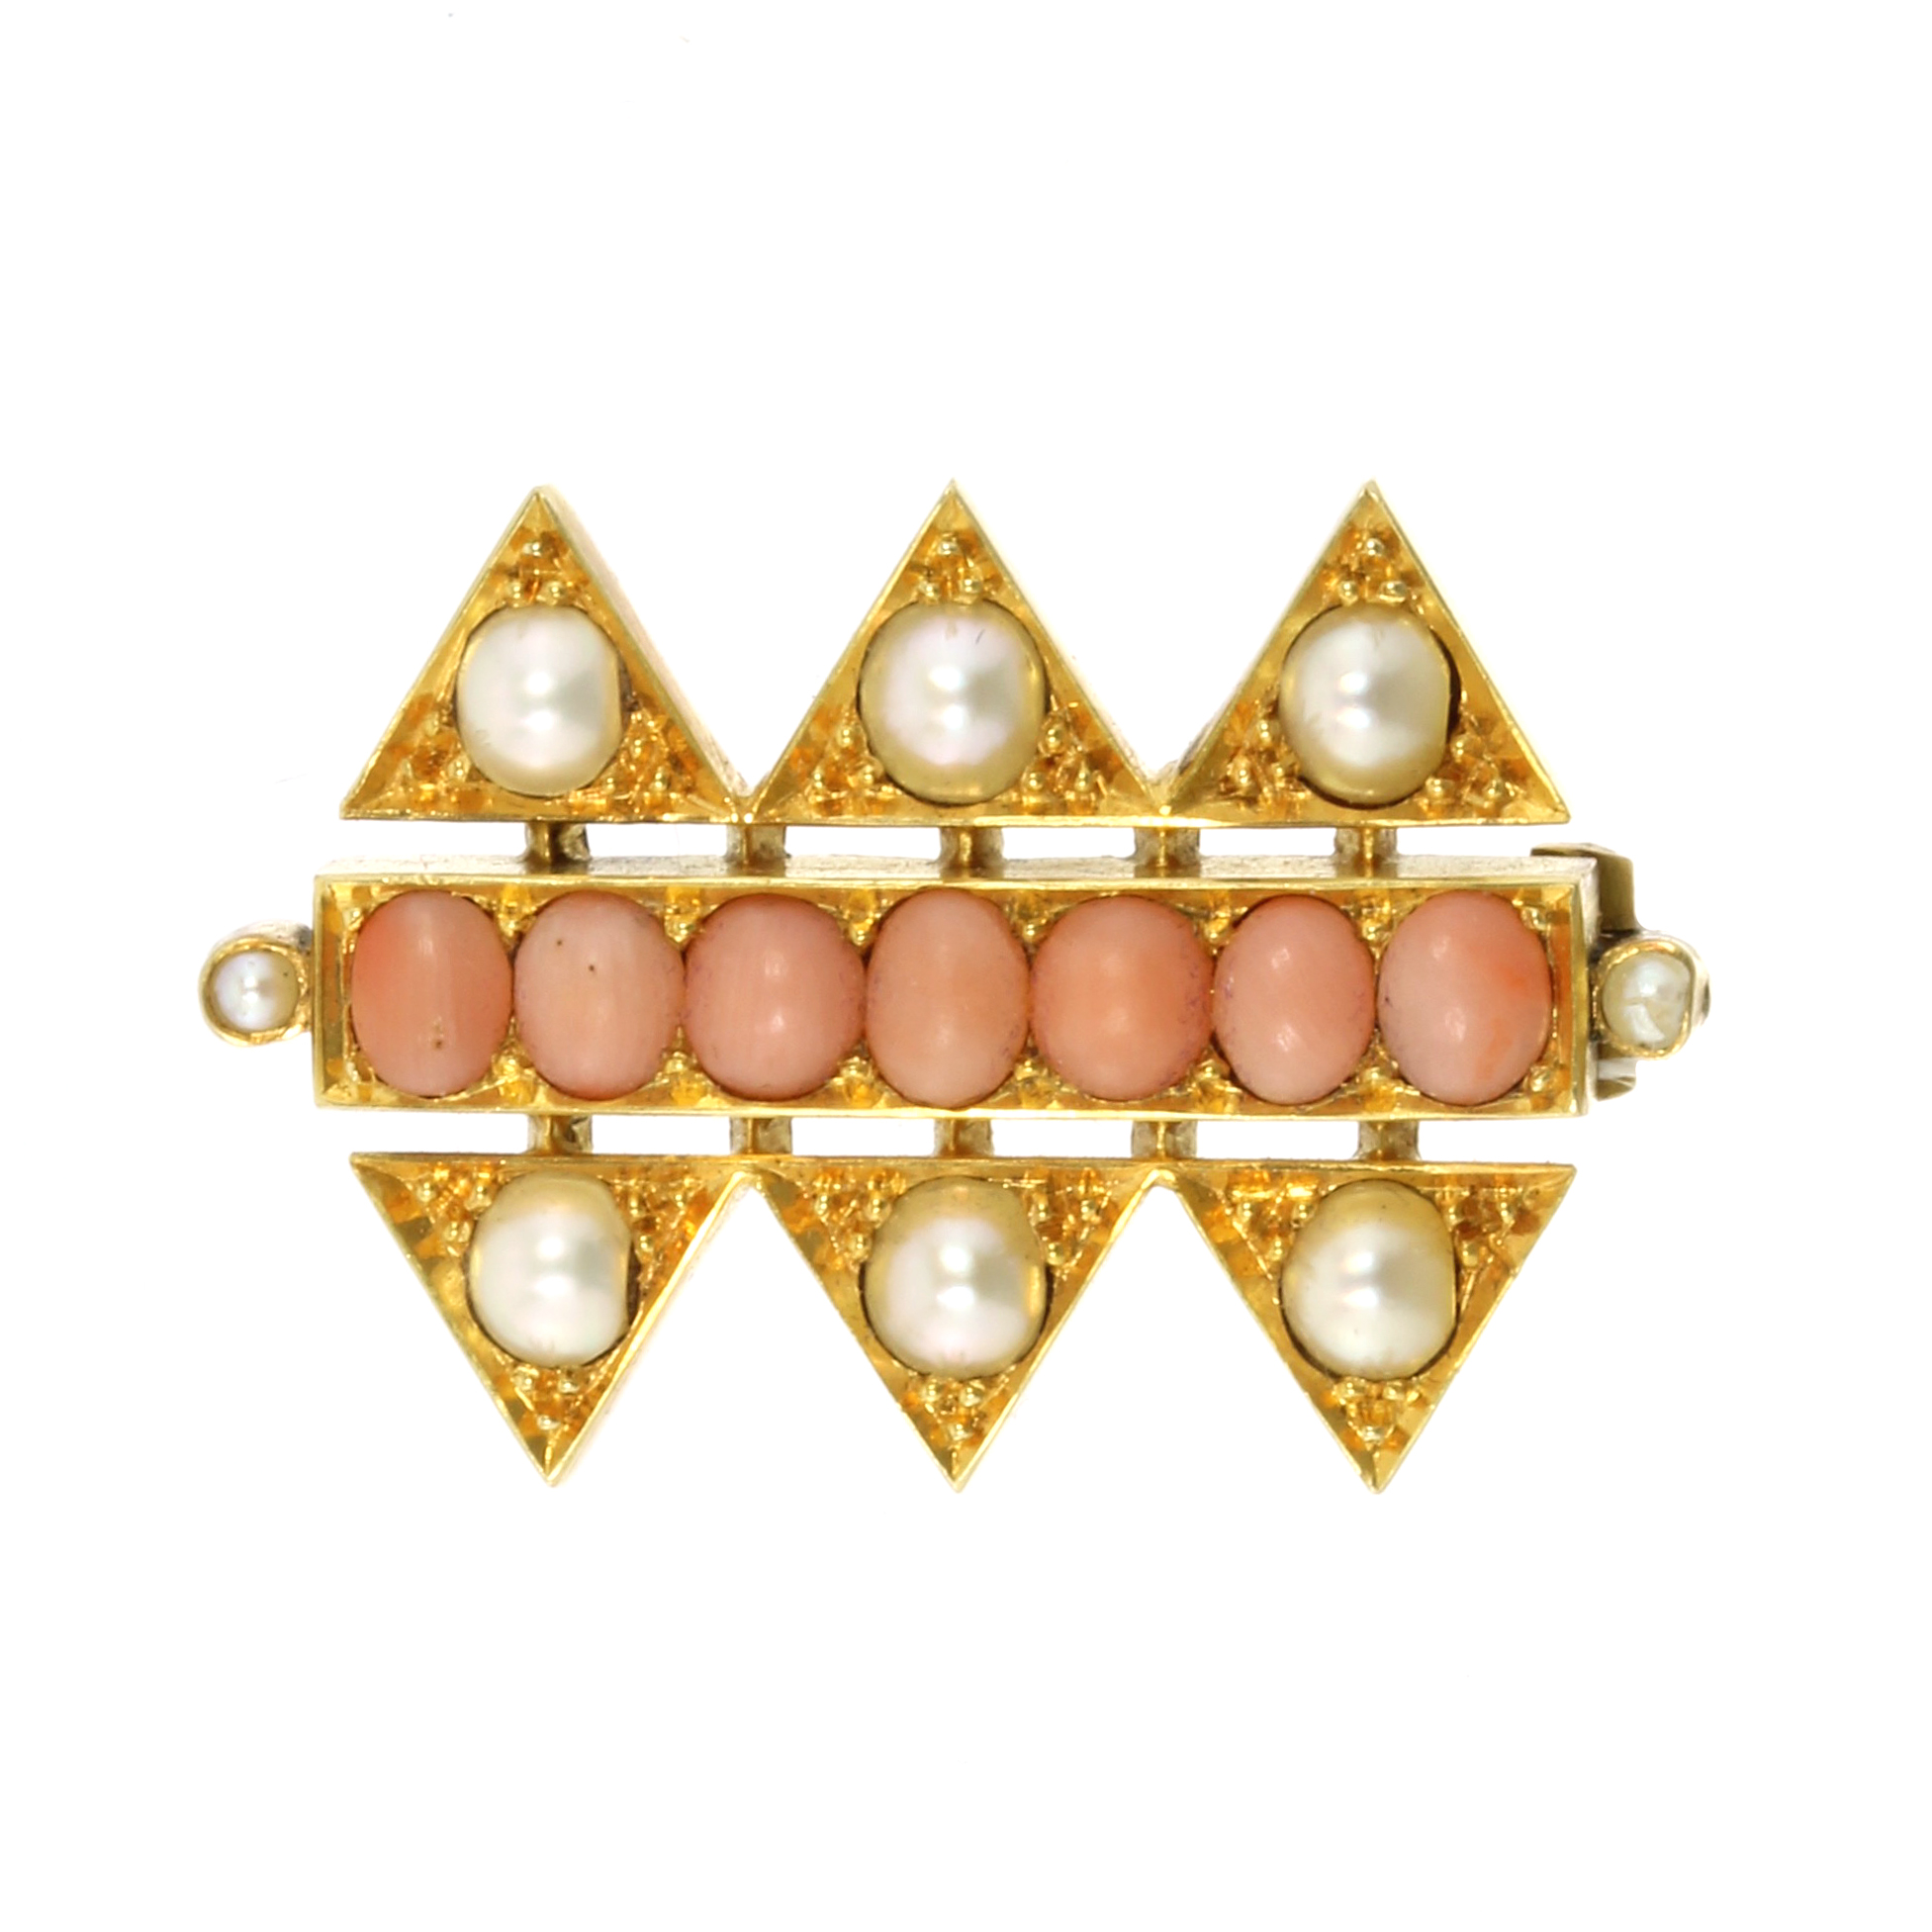 Los 10 - AN ANGEL CORAL AND PEARL BROOCH set with a single row of angel coral cabochons flanked above and